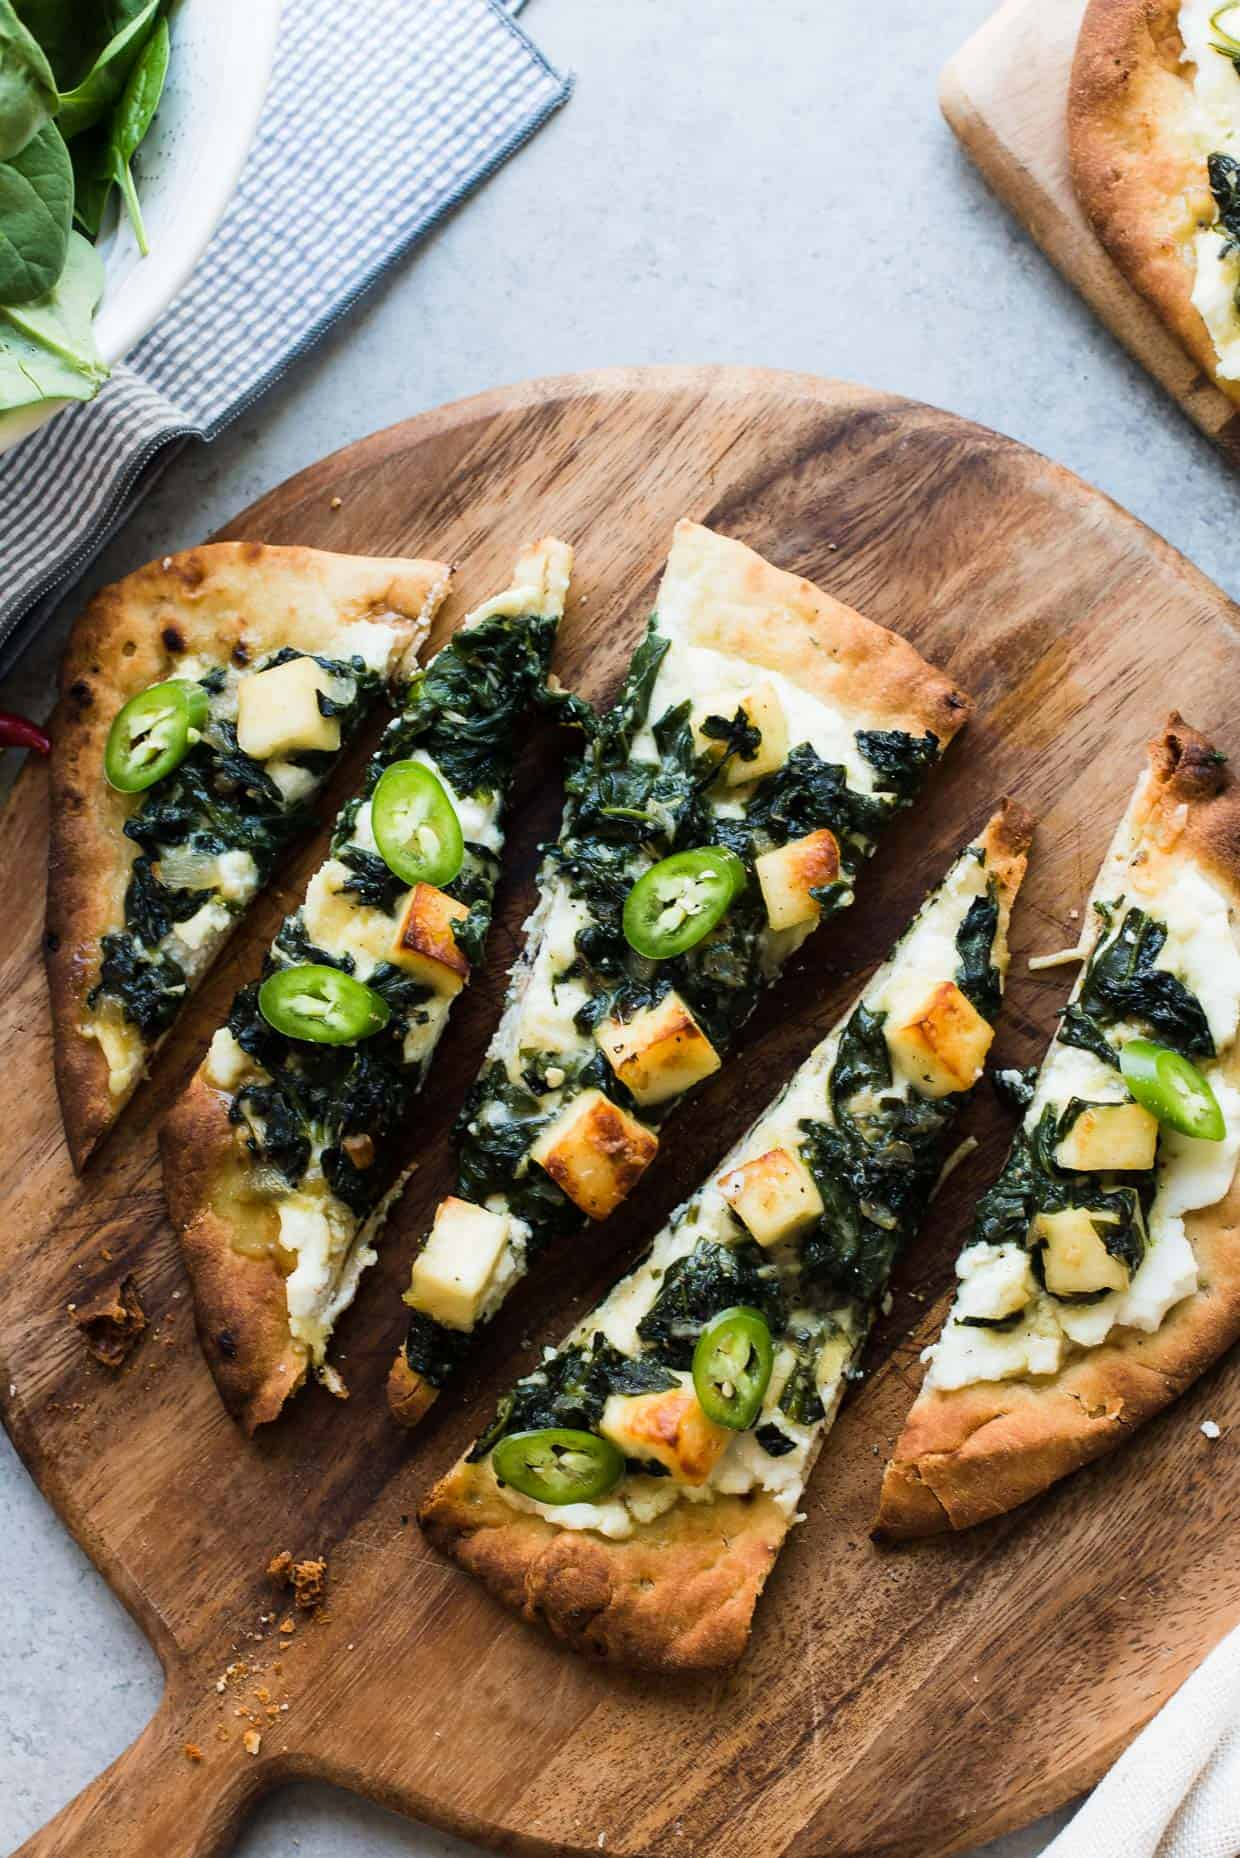 Slices of Saag Paneer Naan Pizza.